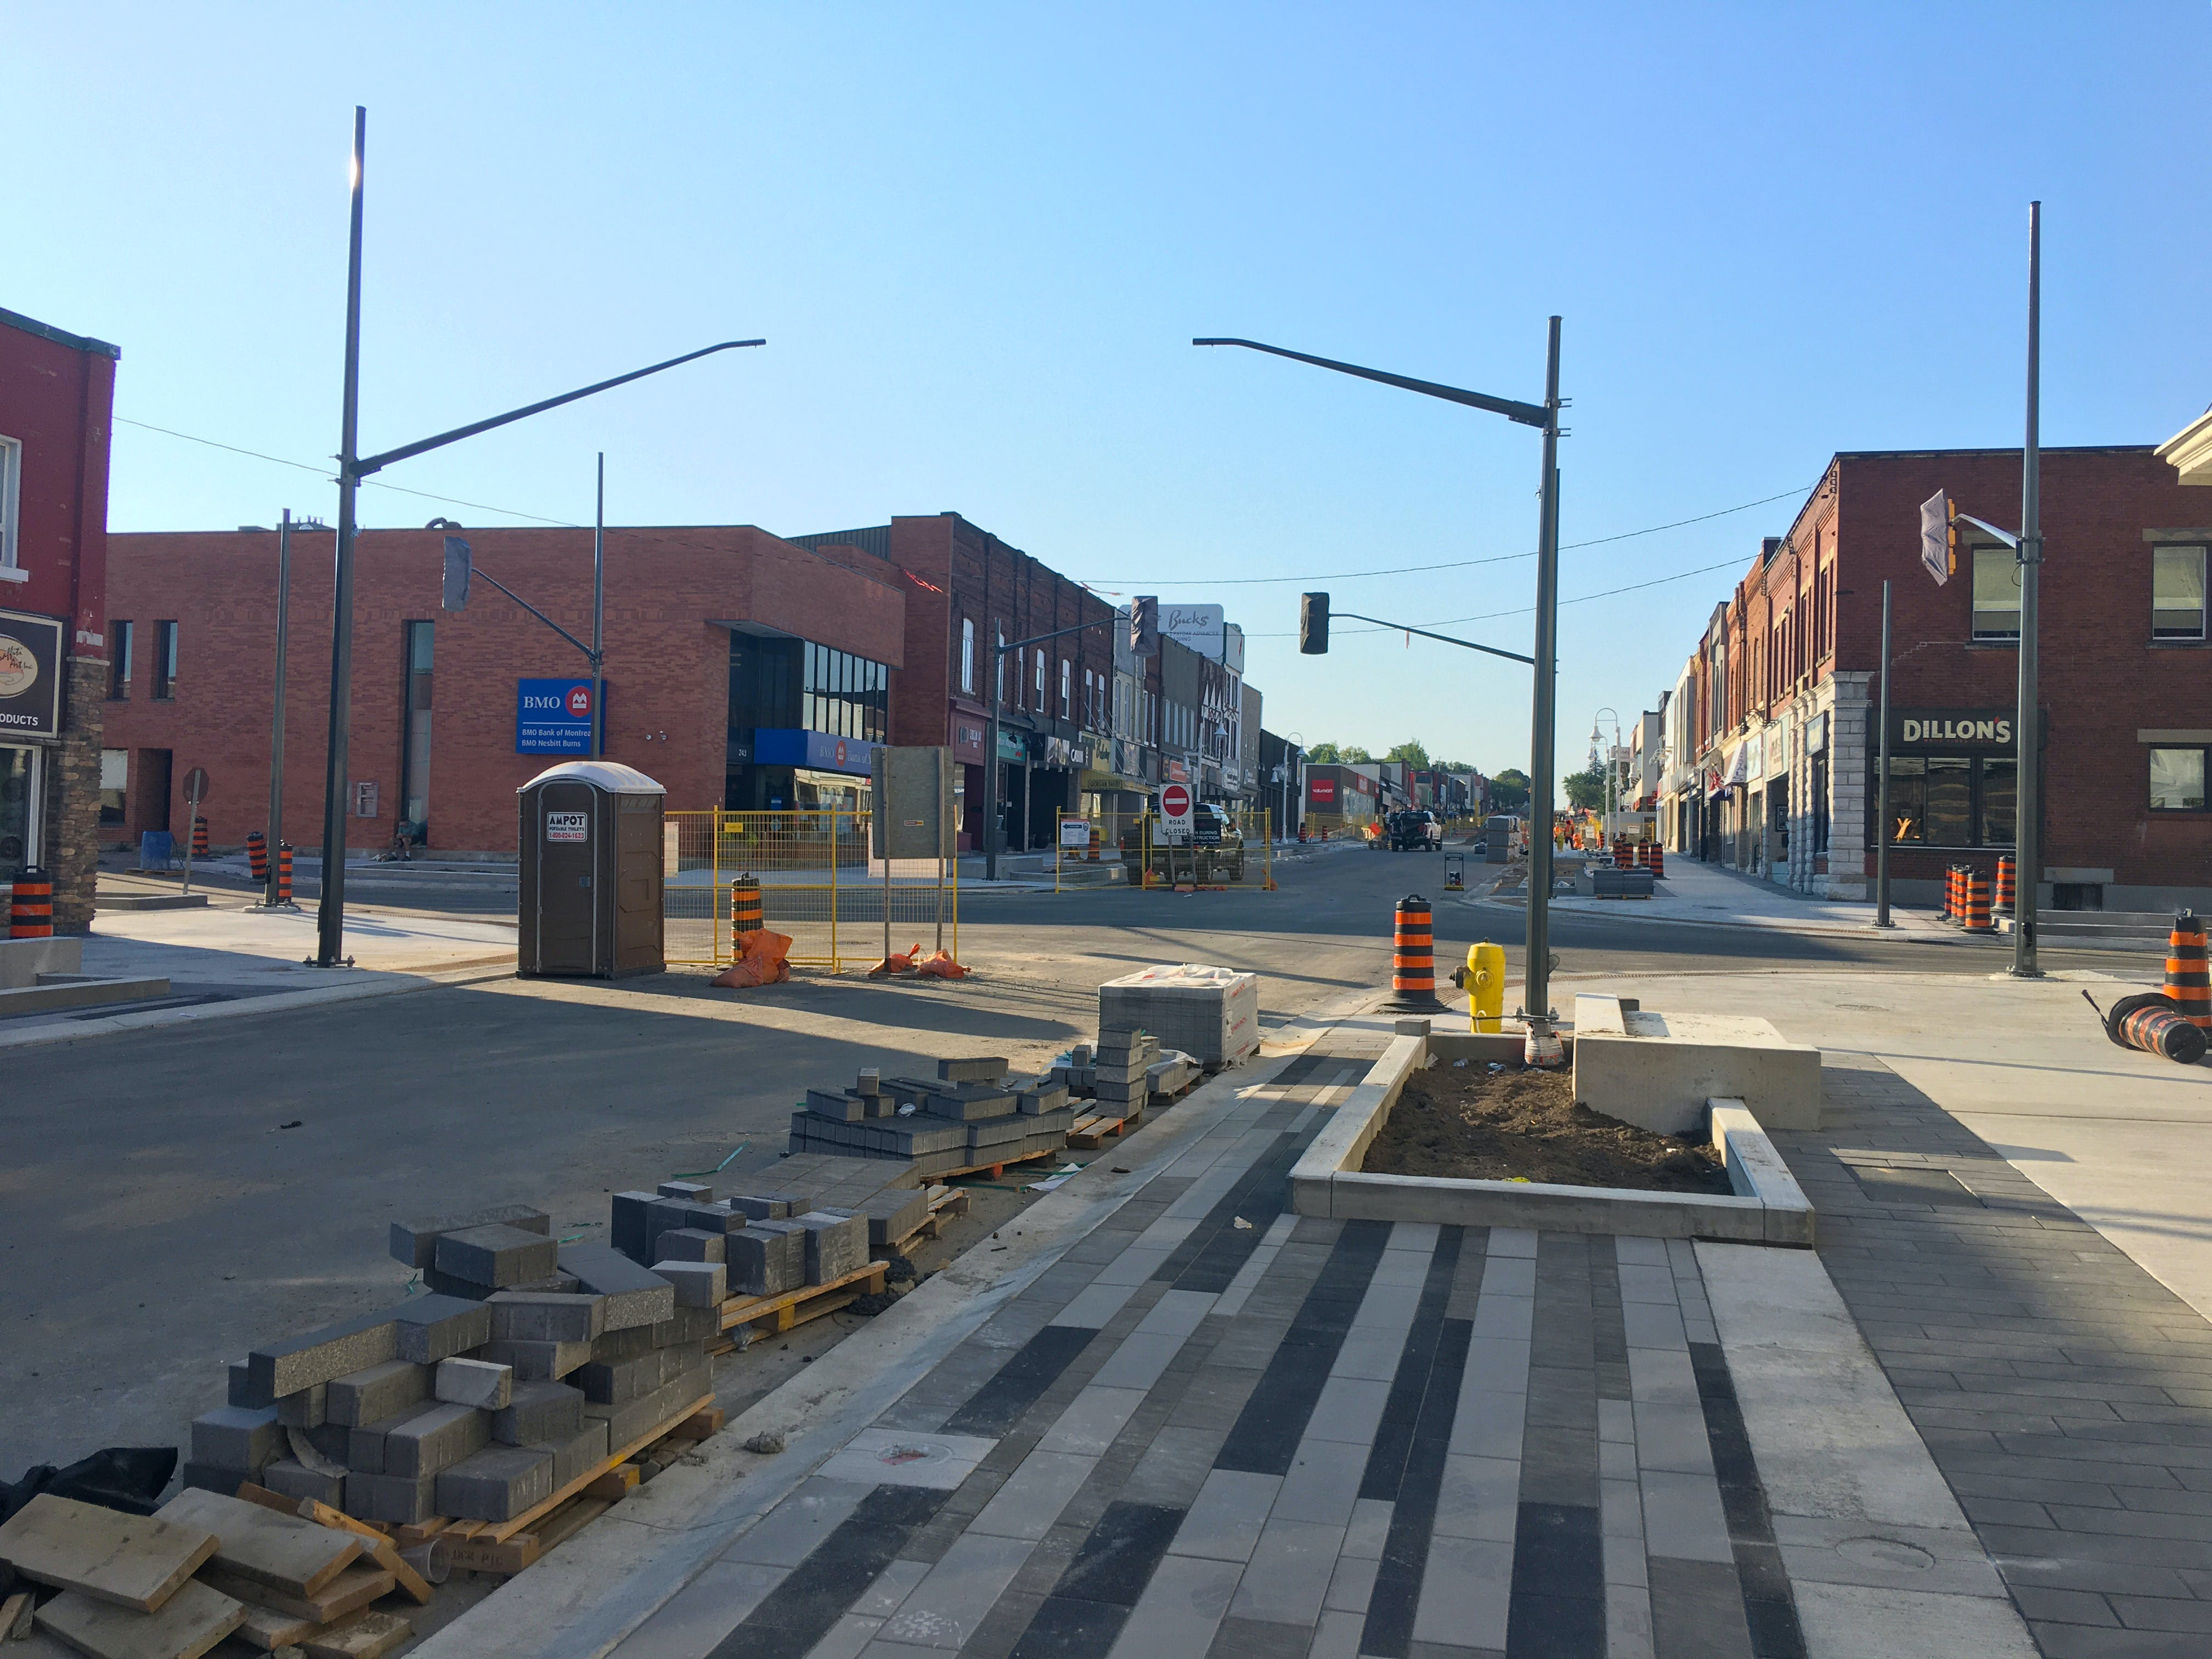 Another view of the new signalized intersection at King Street & Dominion Avenue